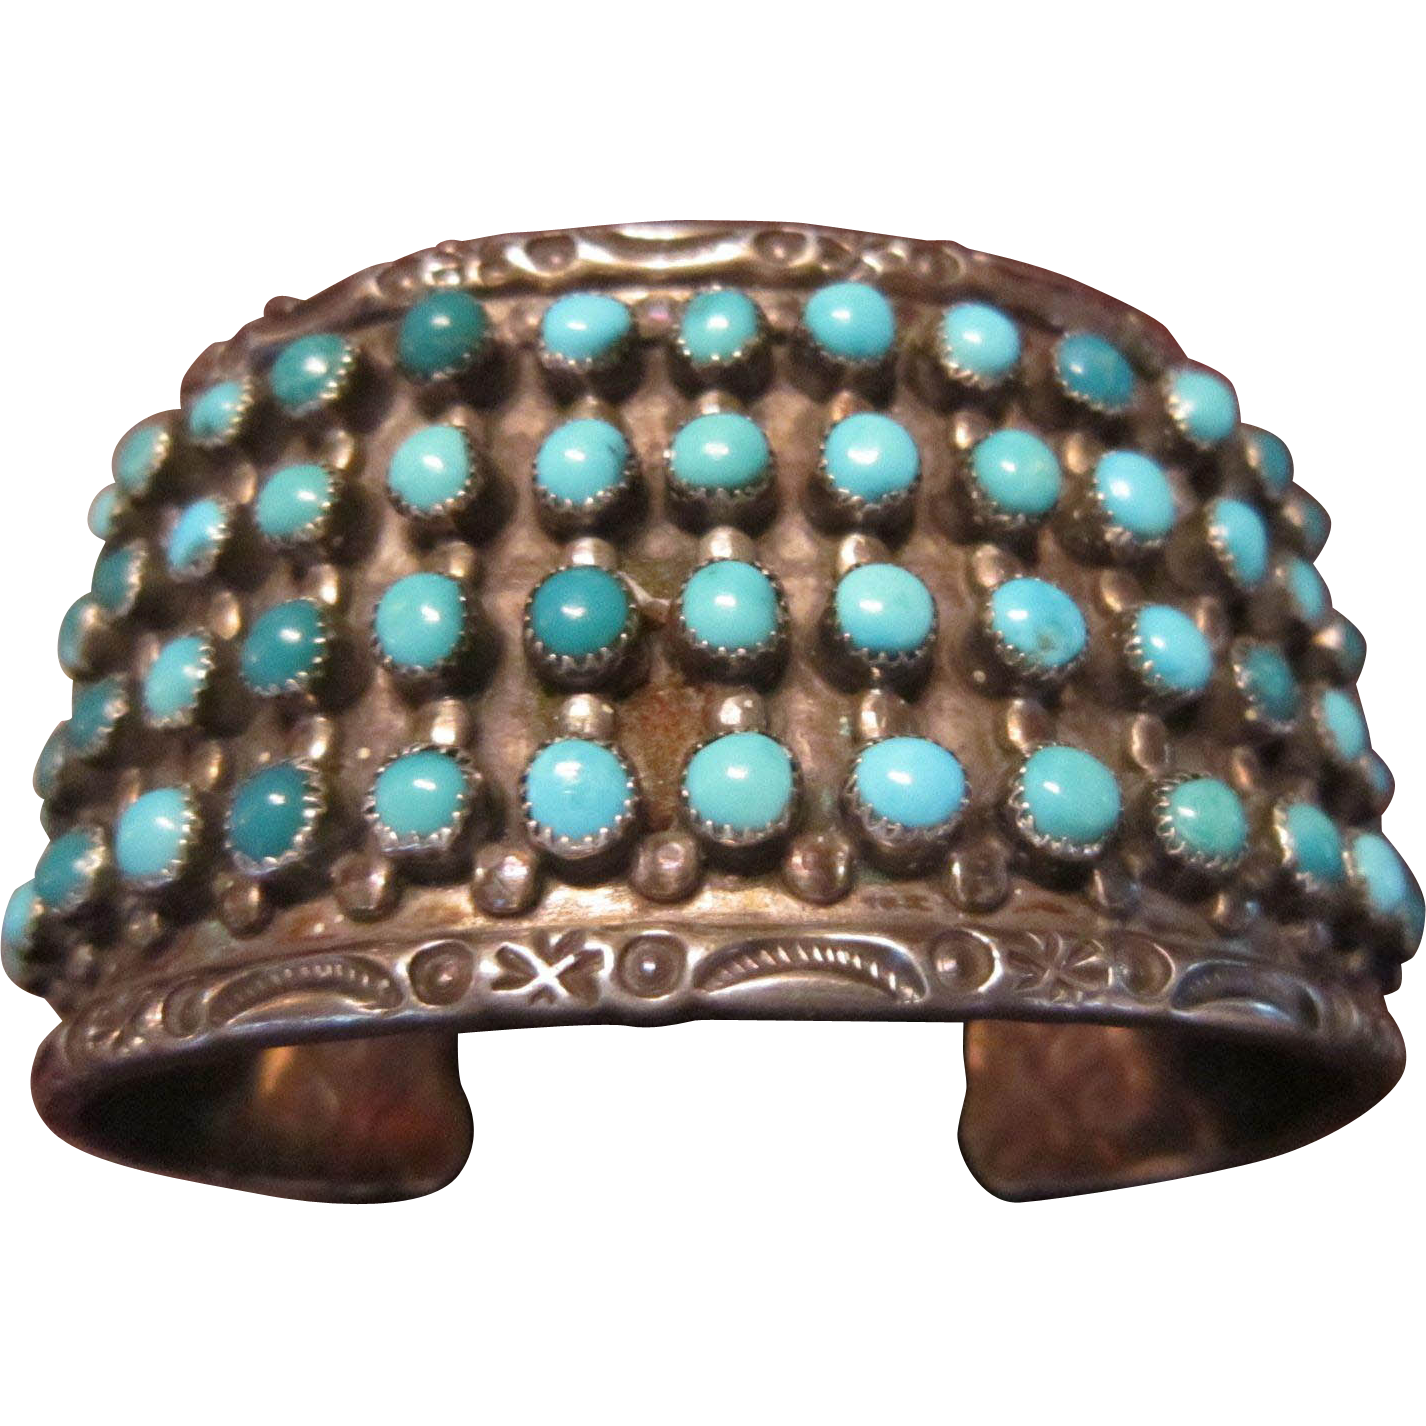 SALE $99 OFF: J P Ukestine, Zuni, 4 Row Sterling Cuff Bracelet with Turquoise